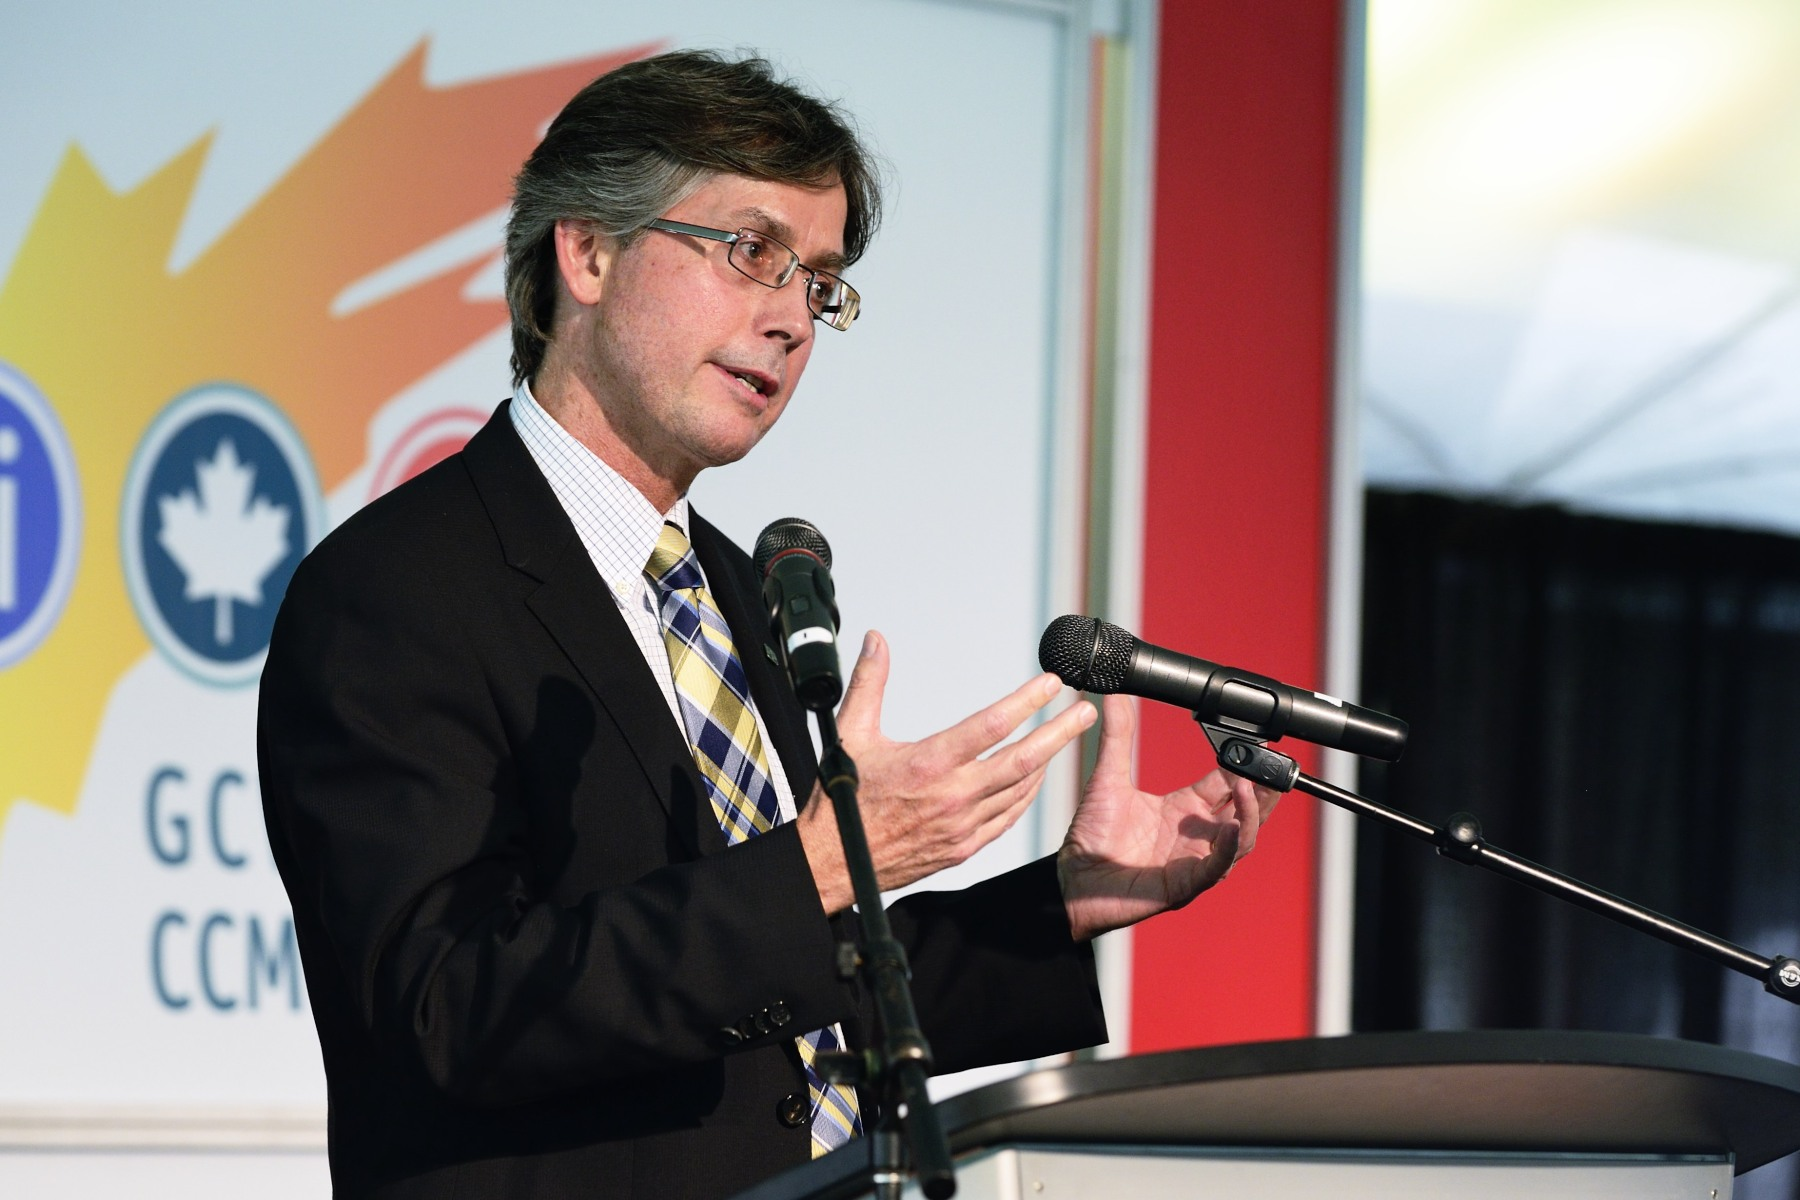 The national chair of GCWCC, Mr. William F. Pentney, delivered remarks for the occasion. Mr. Pentney is Deputy Minister of Justice and Deputy Attorney General of Canada.